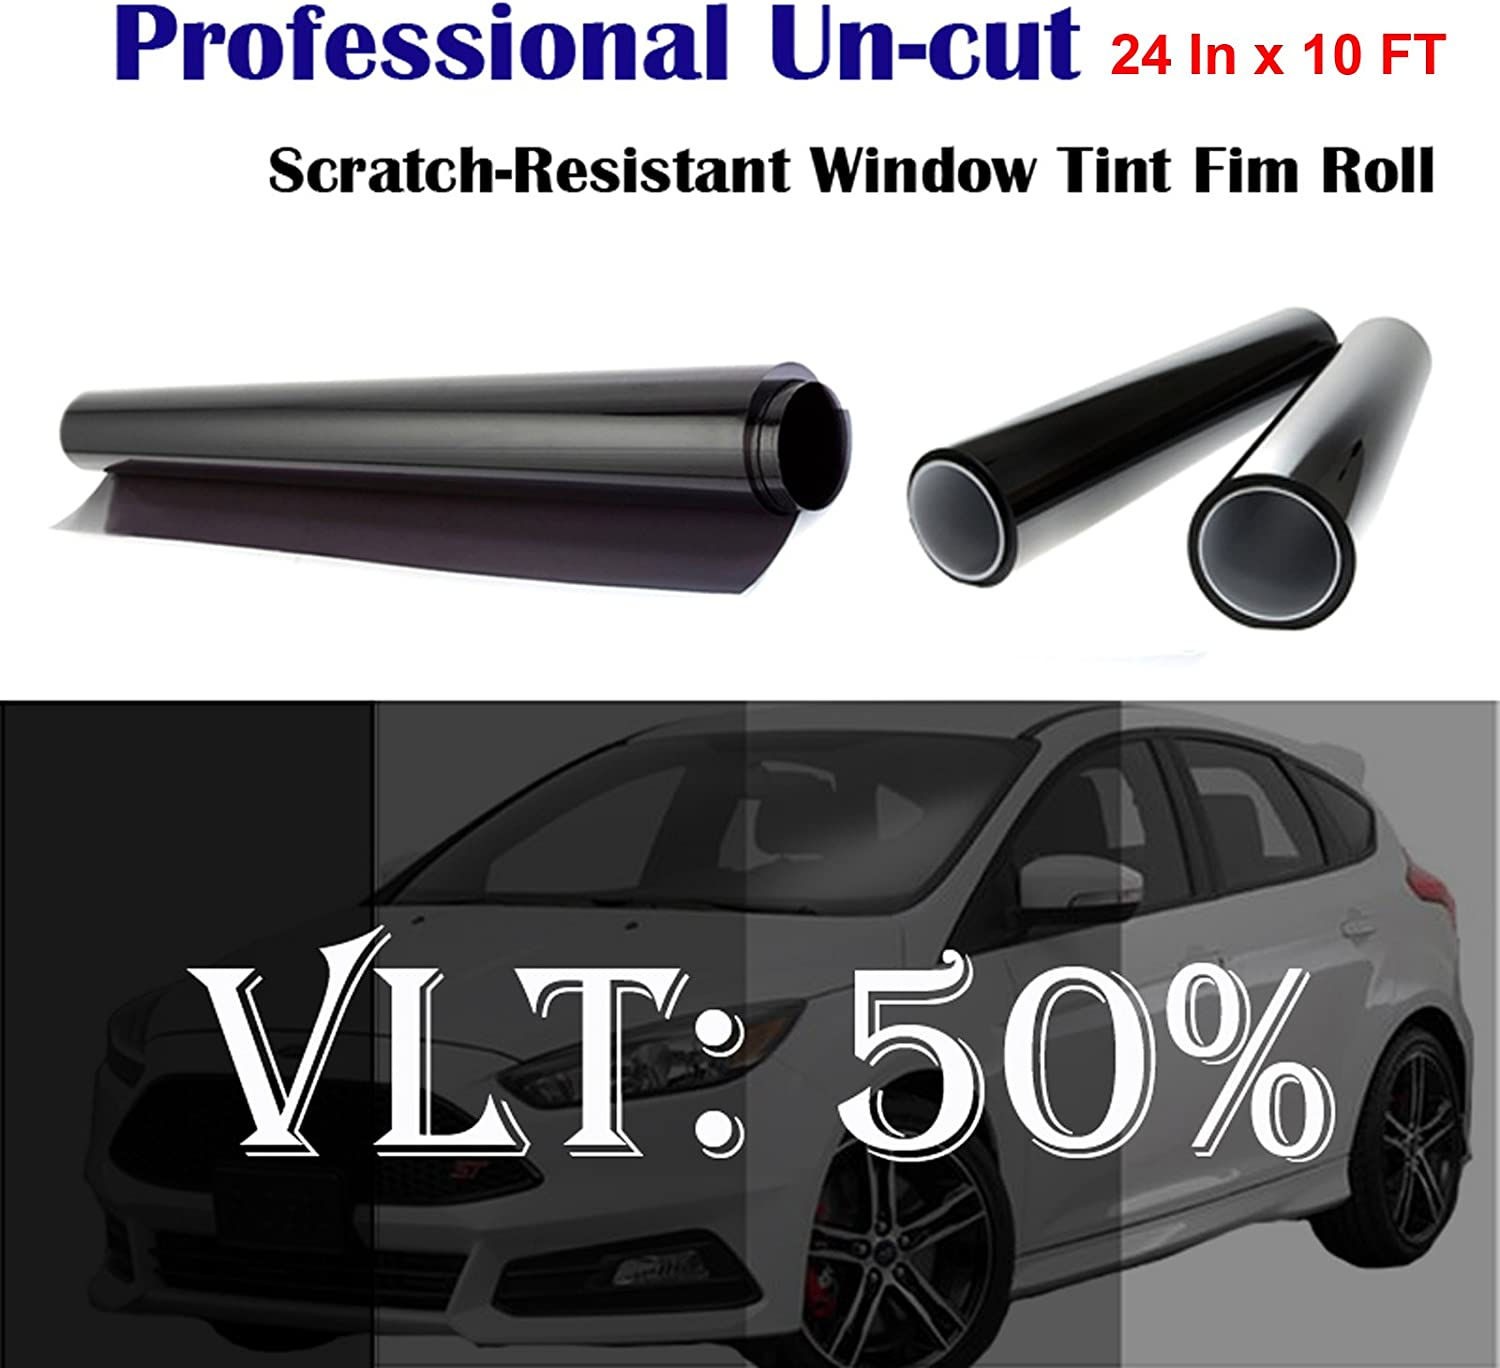 Mkbrother Uncut Roll Window Tint Film 50/% VLT 24 in x 10 Ft Feet Car Home Office Glass